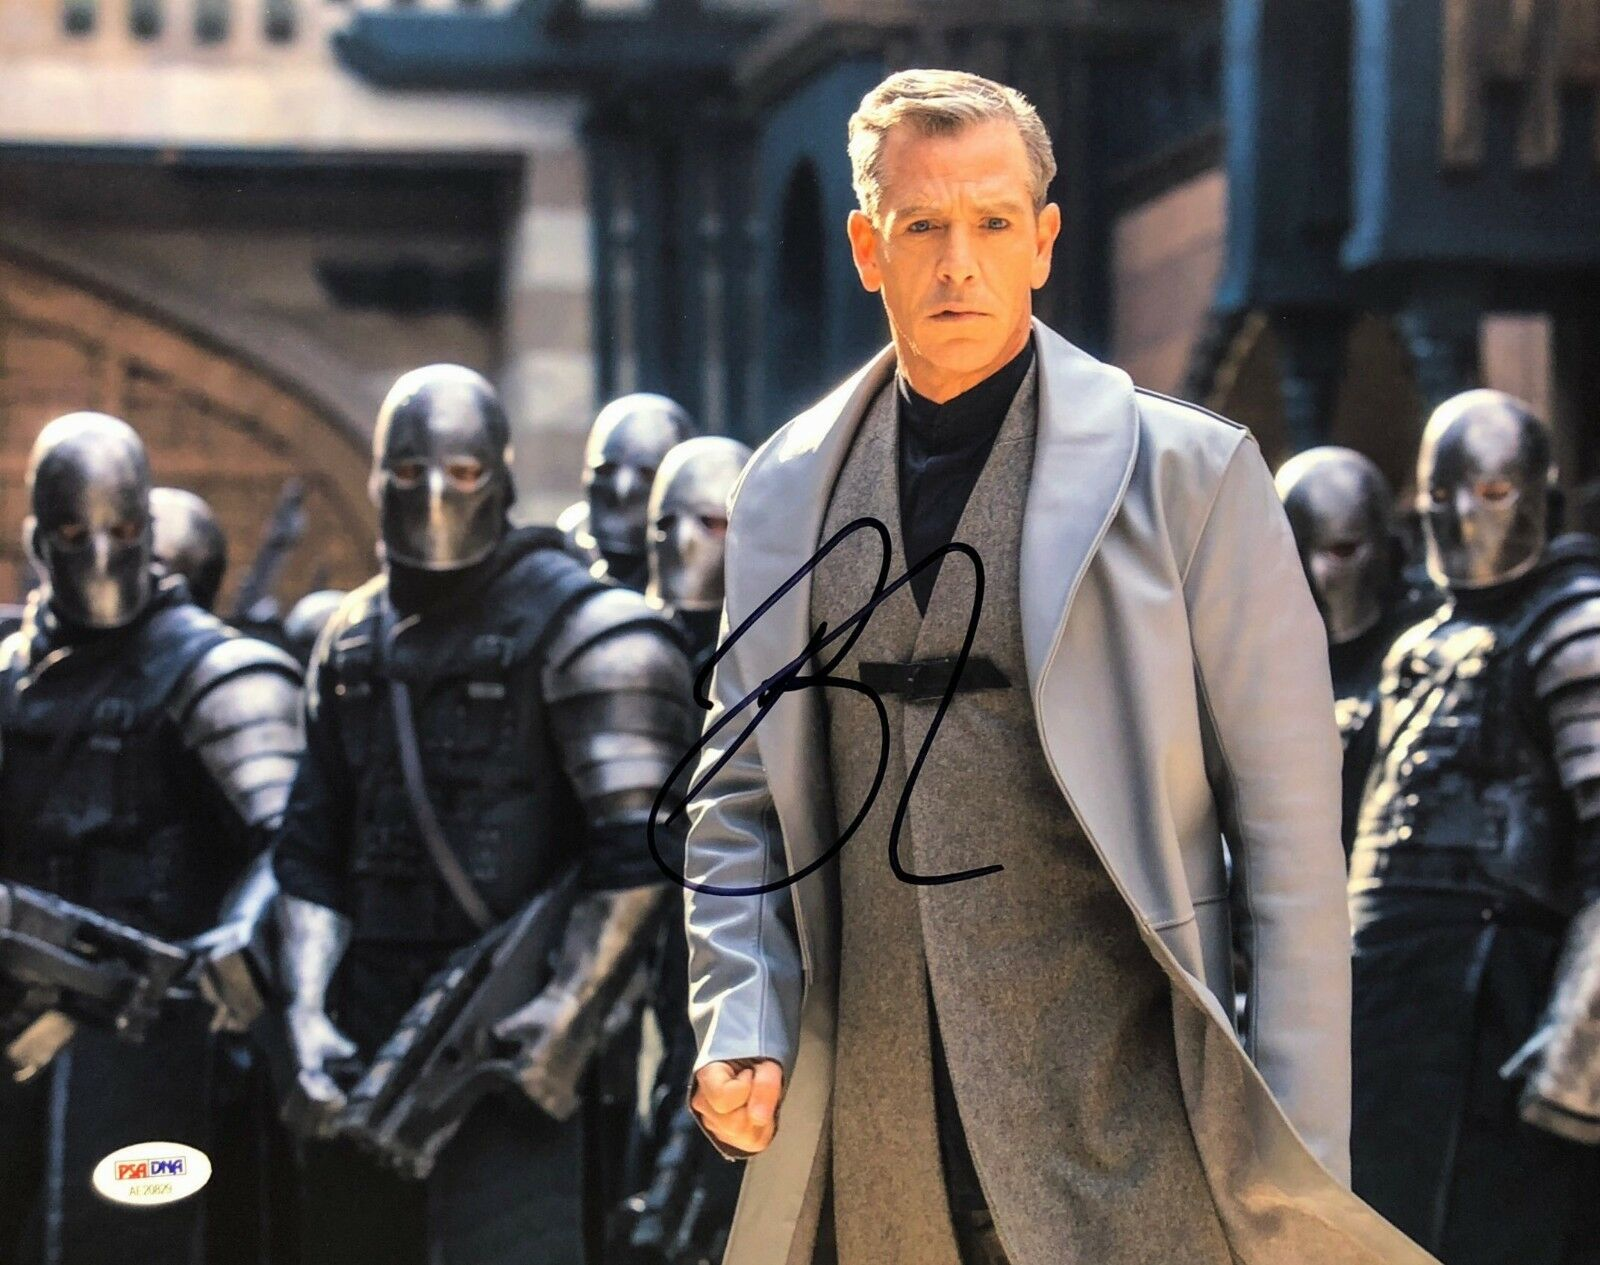 Ben Mendelsohn Signed 'Robin Hood' 11x14 Photo PSA AE20829